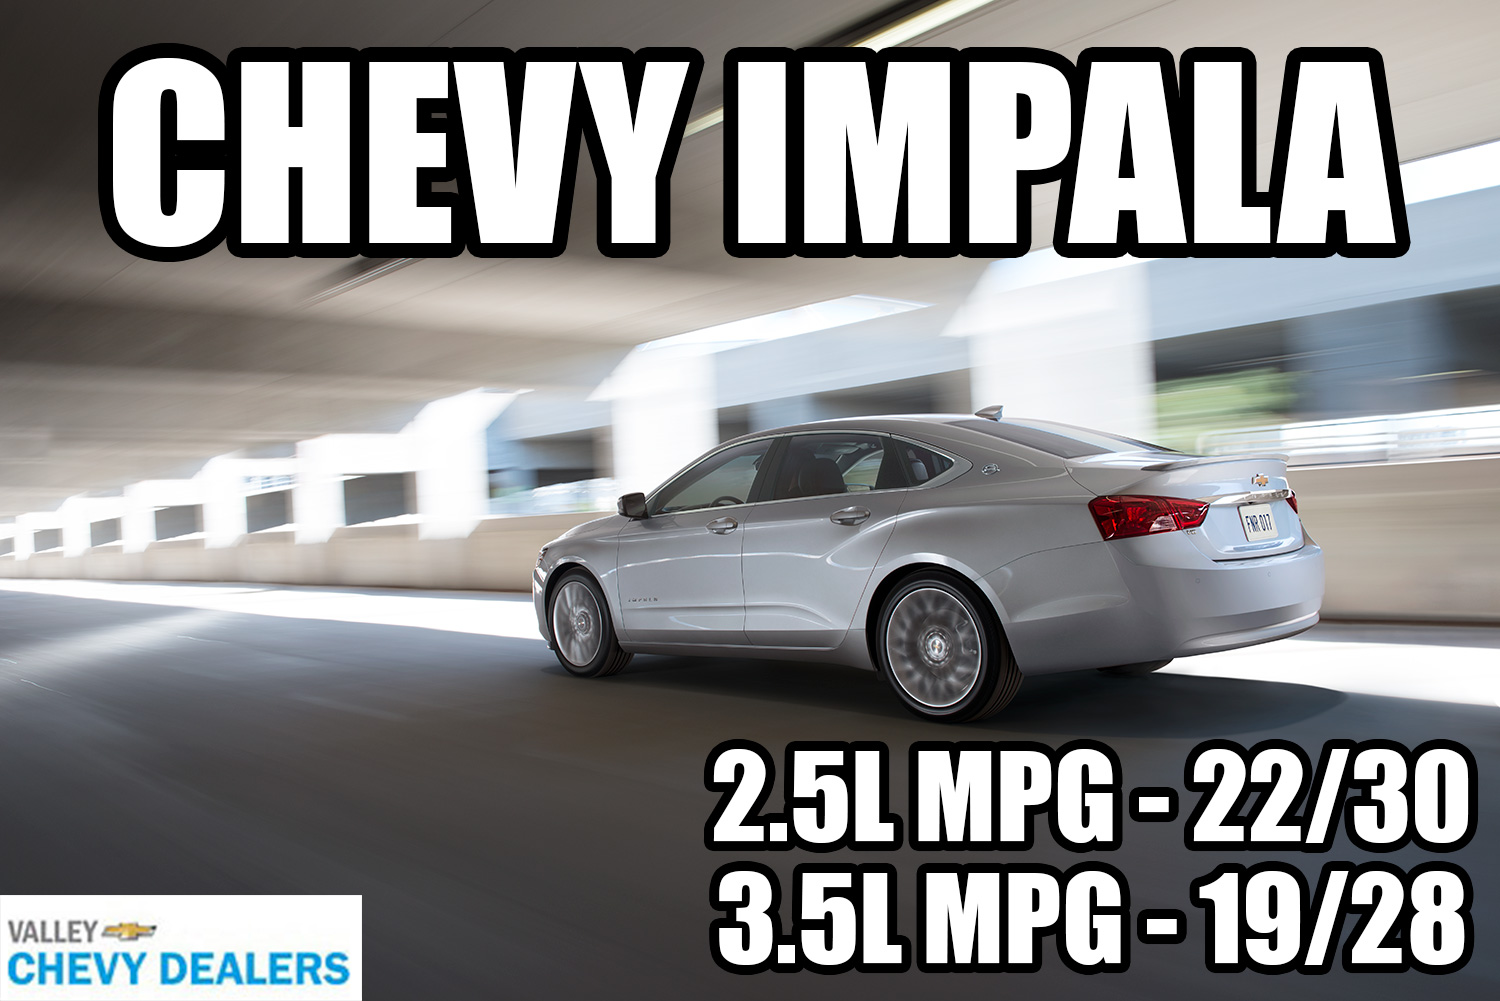 Valley Chevy In Phoenix 2017 Chevrolet Malibu Vs Impala Which One Should I